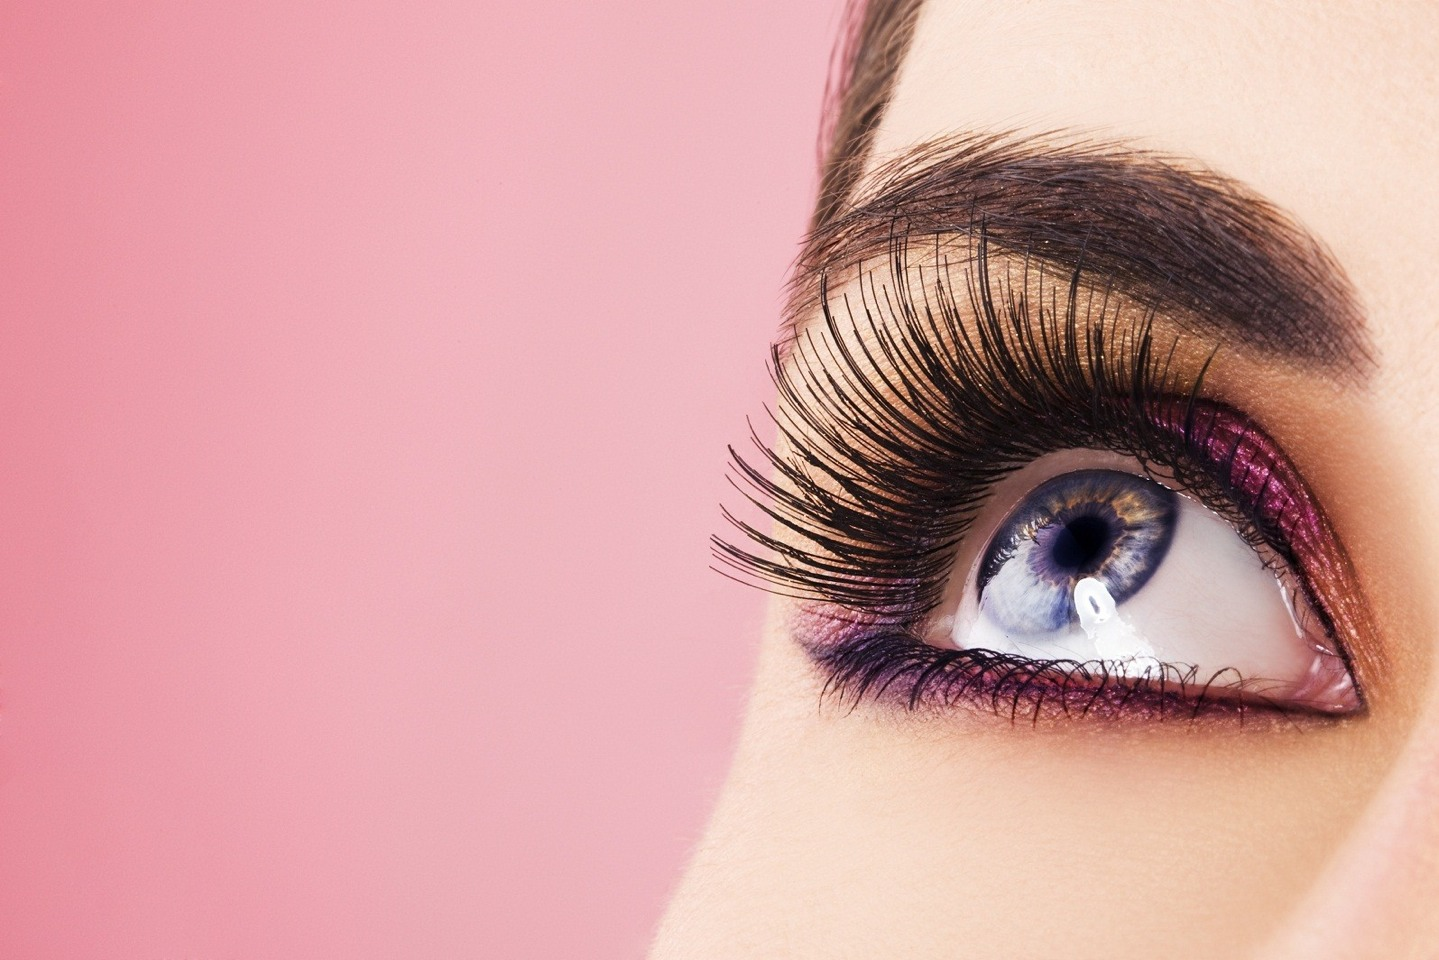 If you have red or blonde eyelashes, choose light brown for a casual look, and dark brown for night time. If you have dark eyelashes, use dark brown or black in the day, and black for more the night drama.